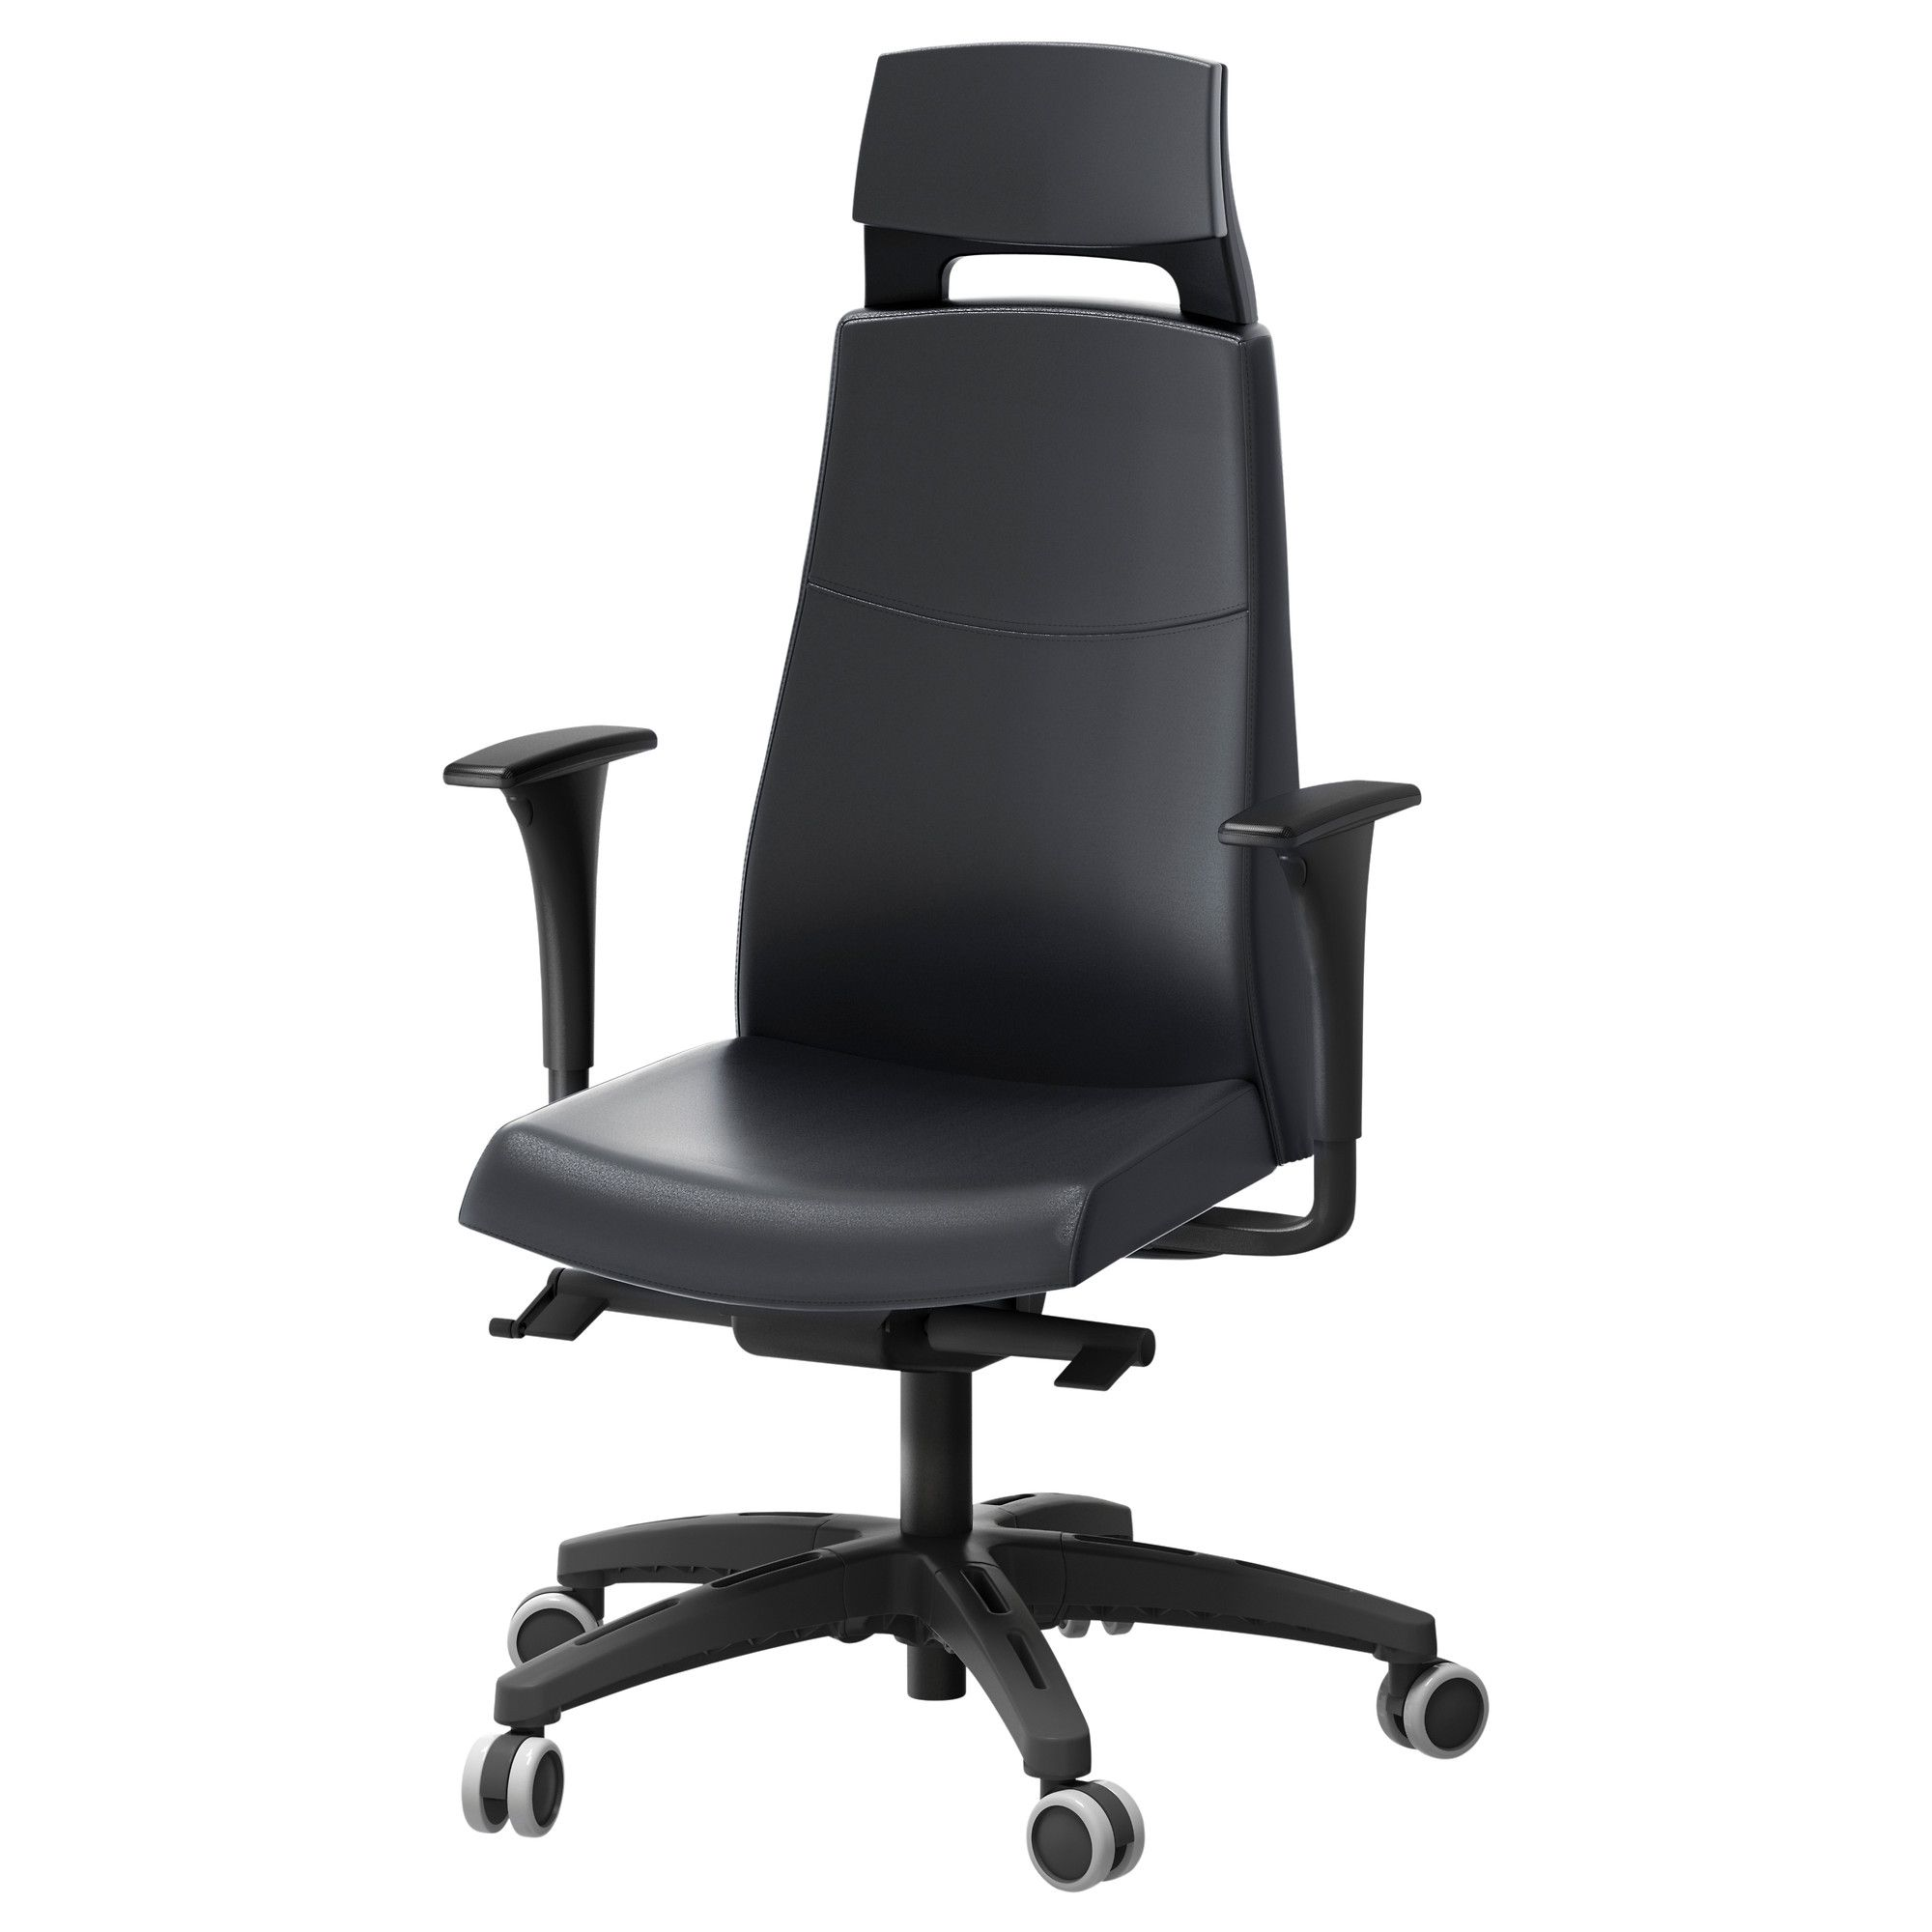 Volmar swivel chair with headrest armrests black ikea office pinterest chair swivel - Conforama sedie ufficio ...